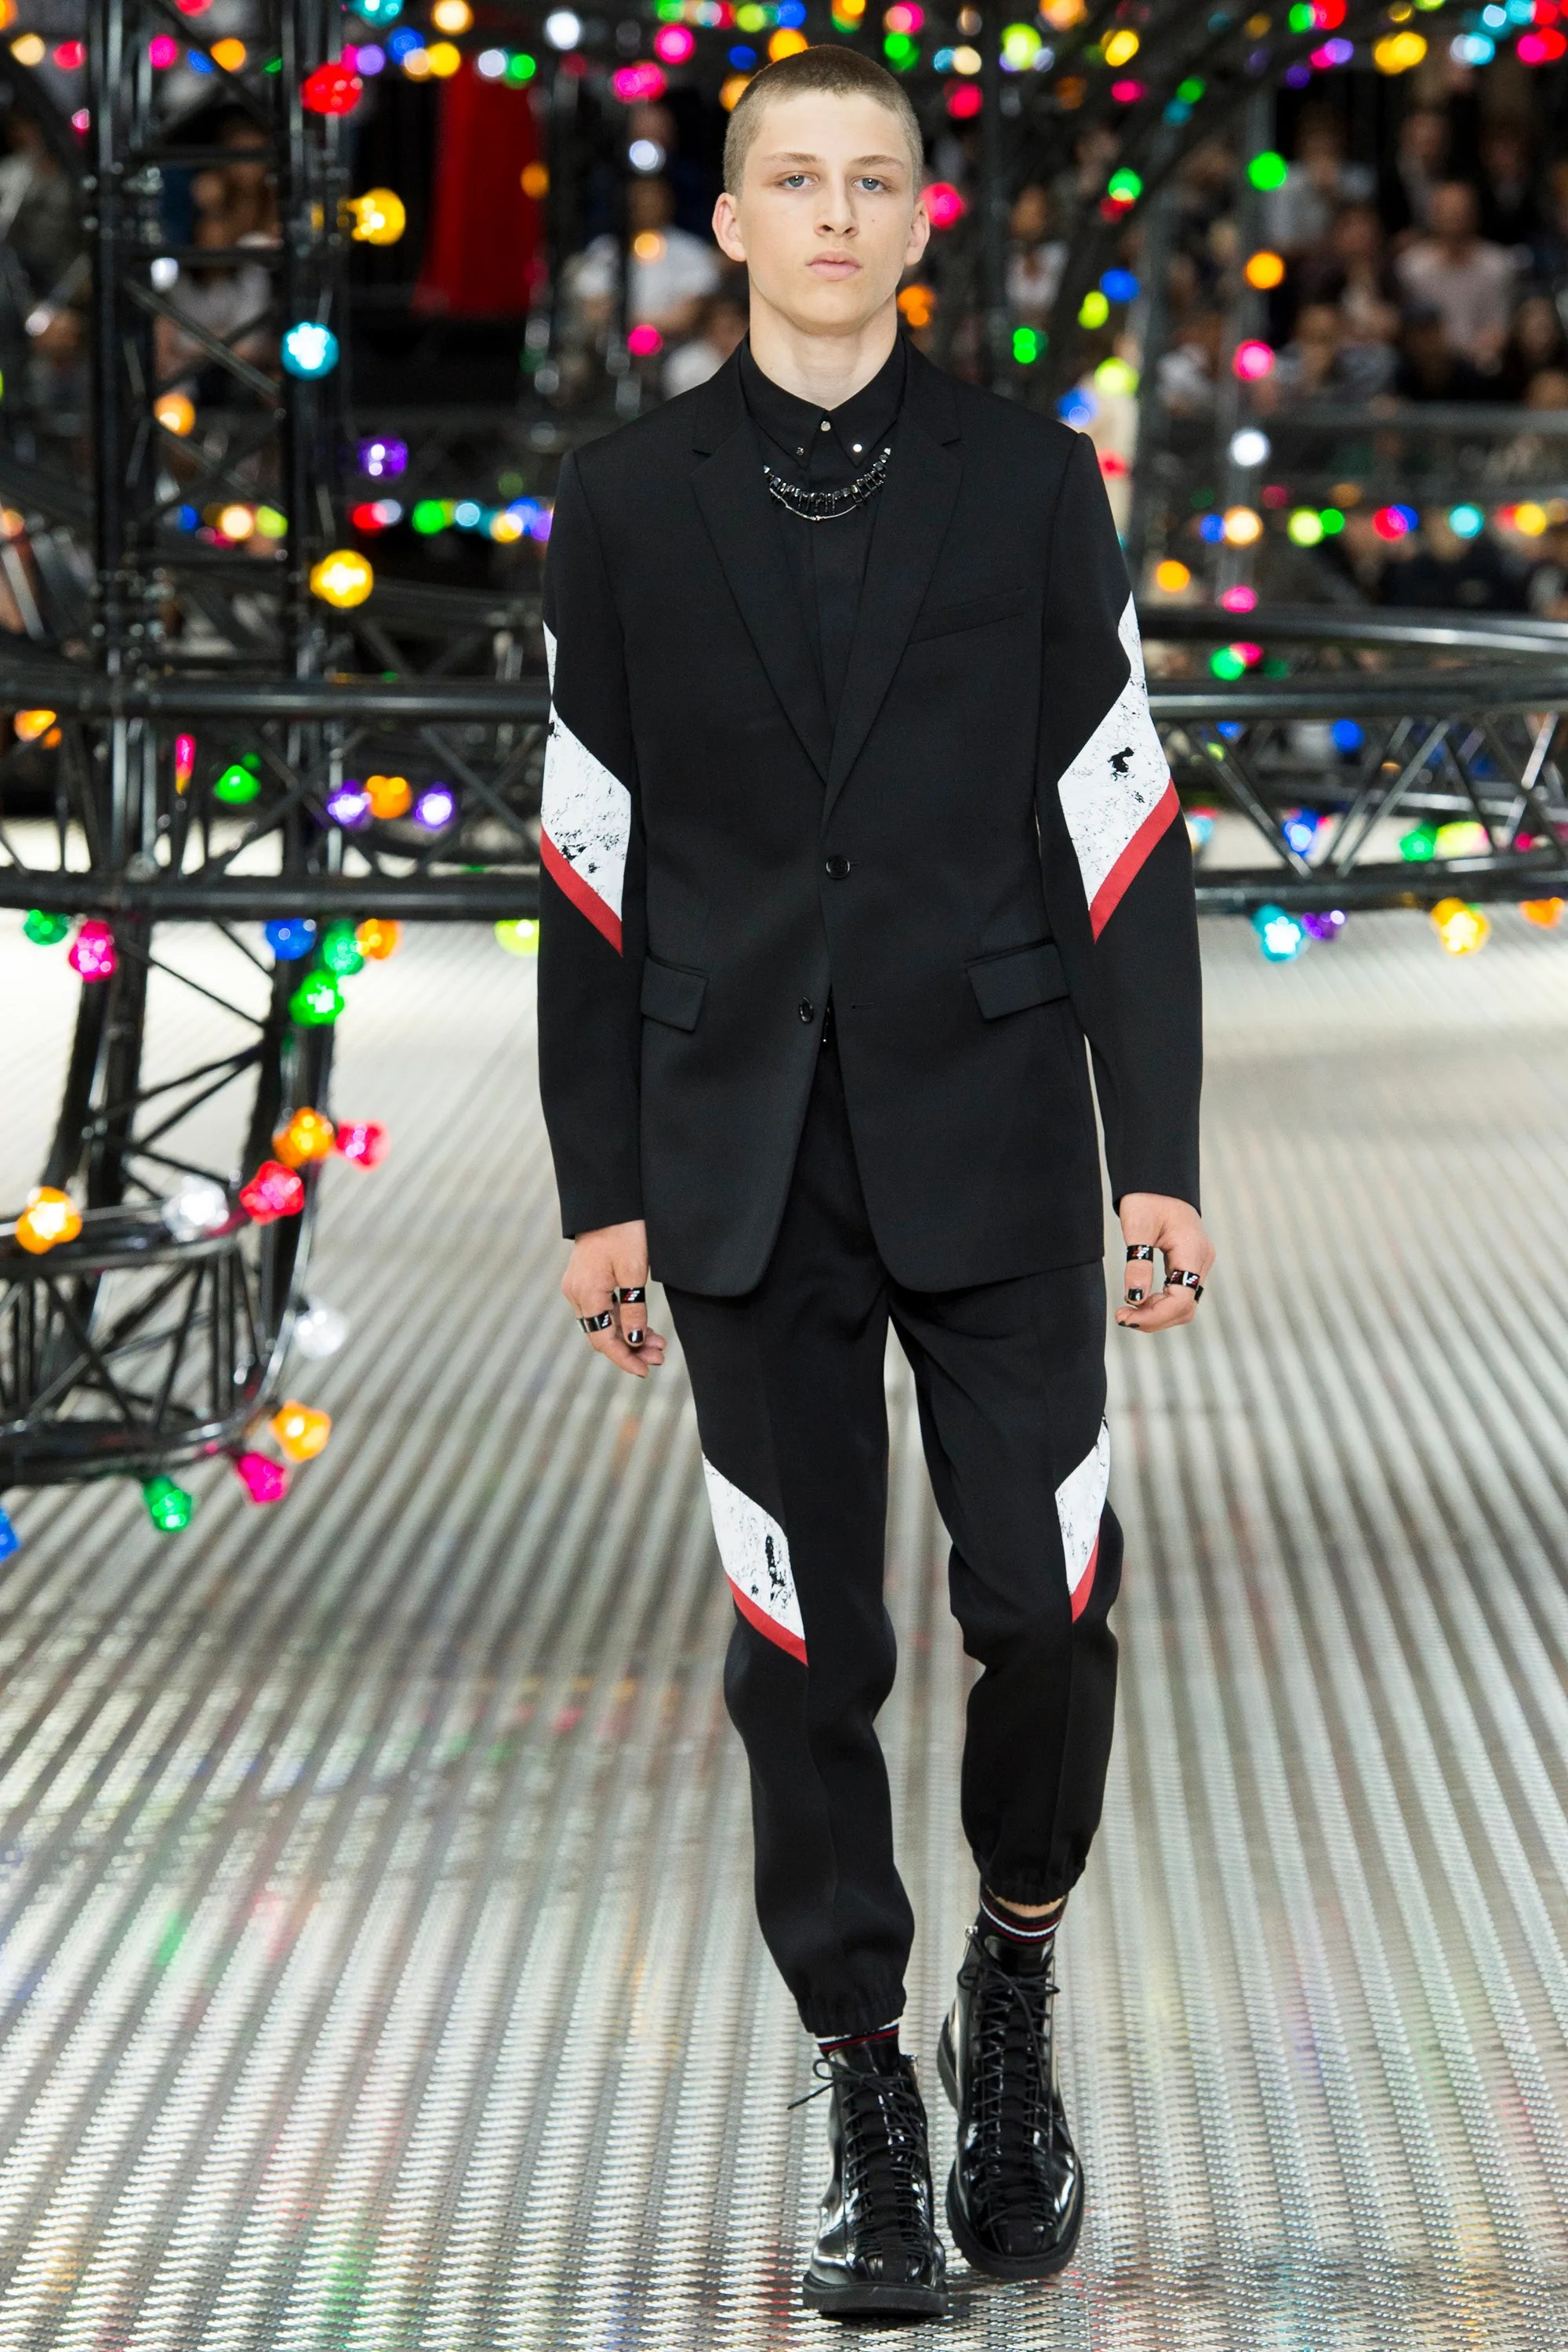 aac8d2fc37 Dior Homme Spring/Summer 2017 Menswear – Subversive Style: Fashion ...